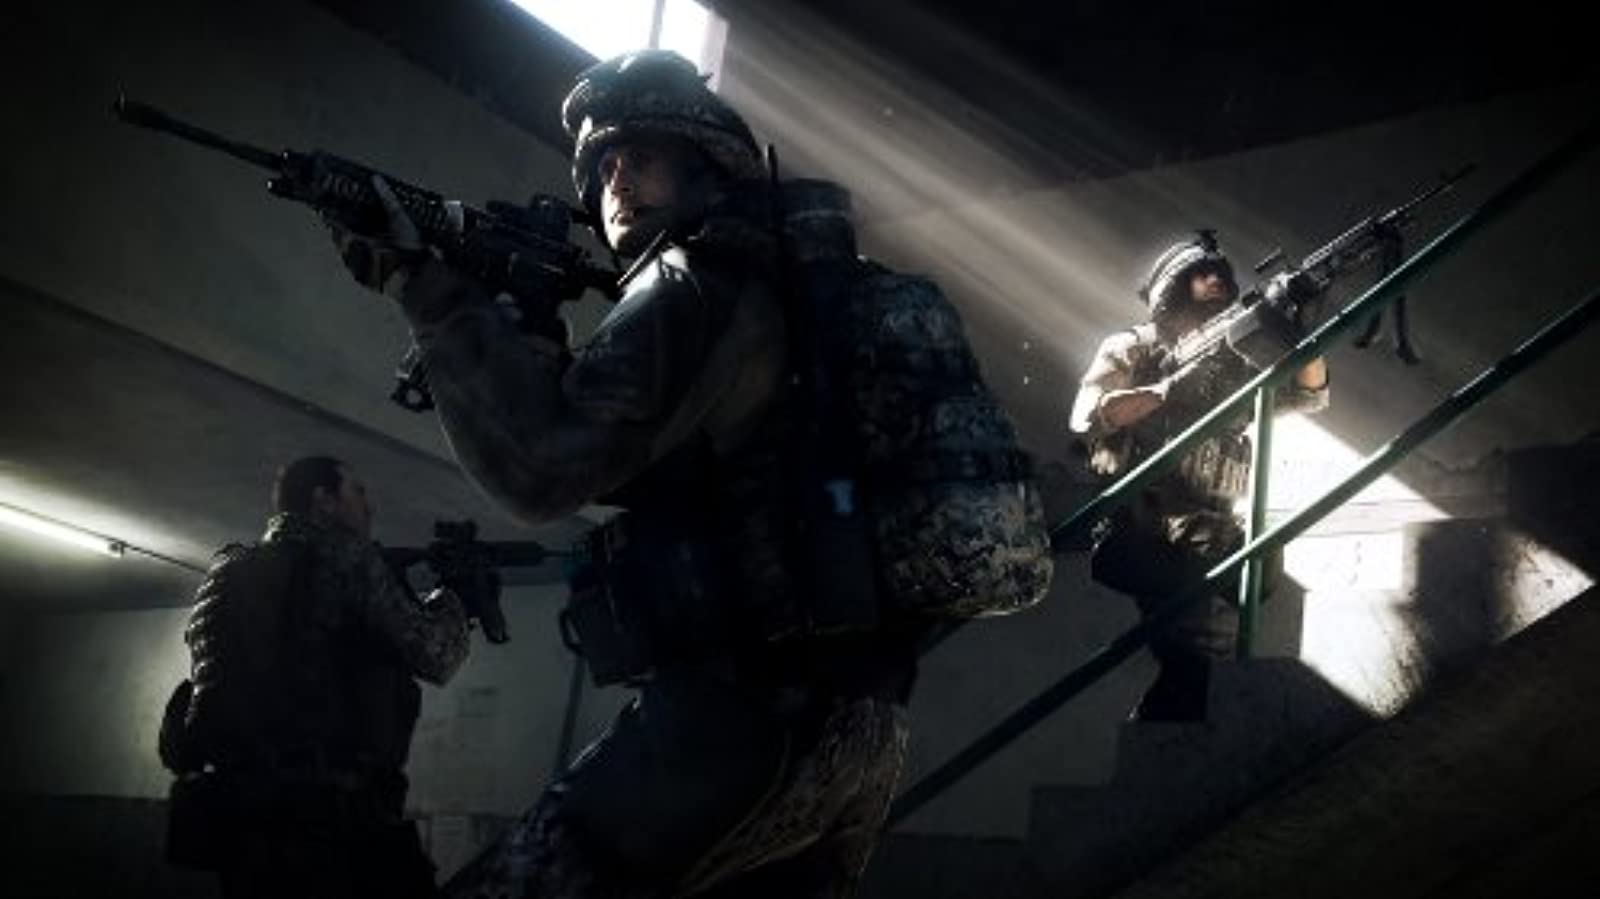 Image 3 of Battlefield 3 For Xbox 360 Shooter